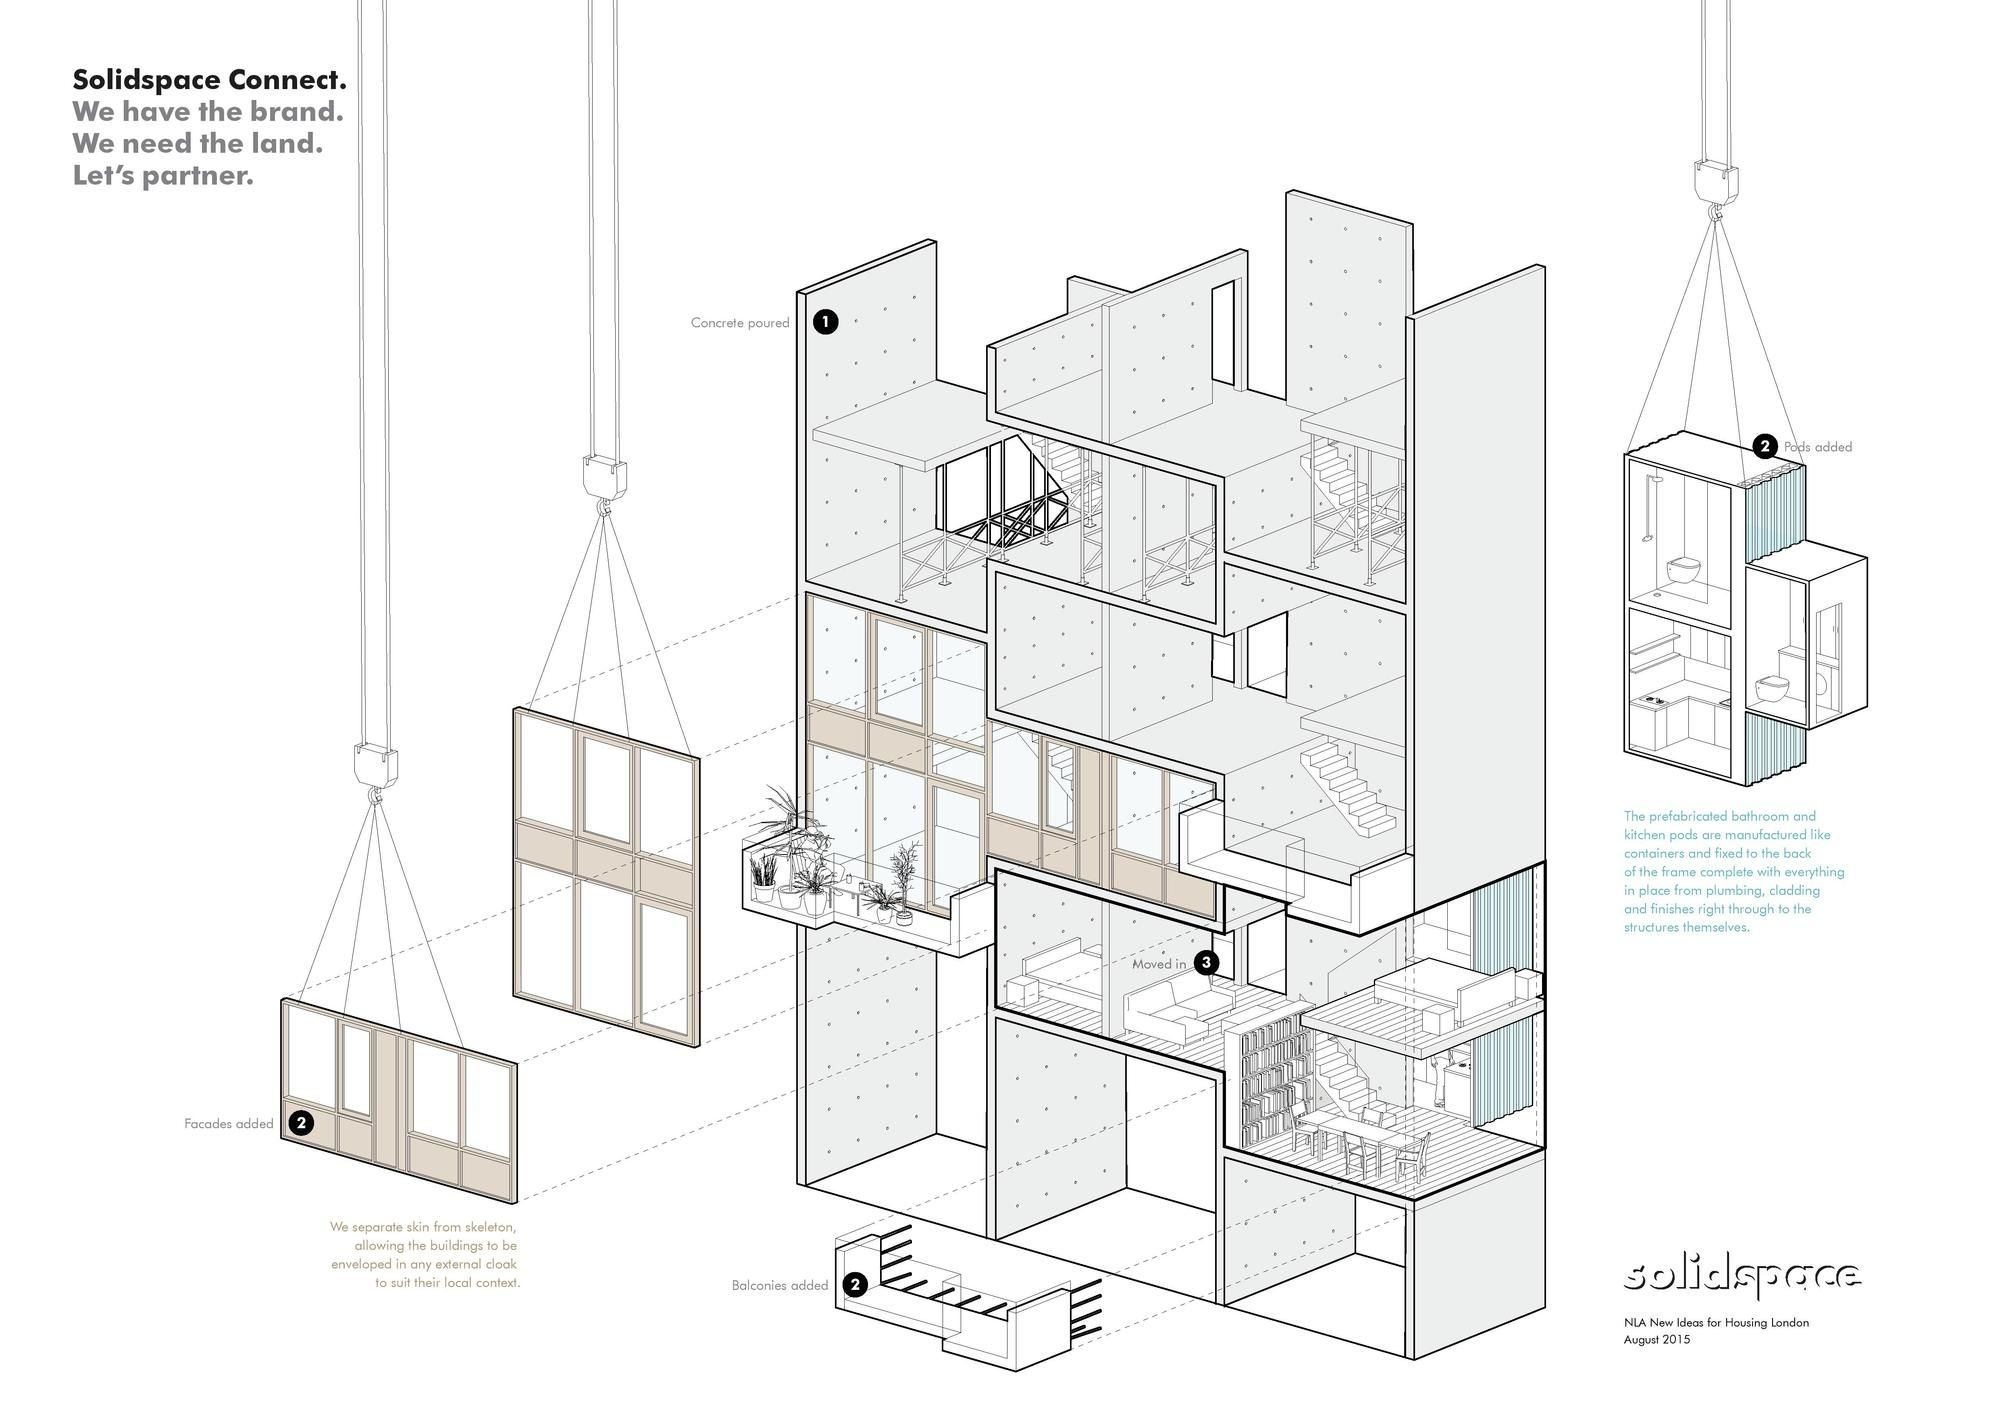 Gallery Of 100 Ideas For Solving London S Housing Crisis According To New London Architect London Architecture Architectural Section Urban Design Architecture